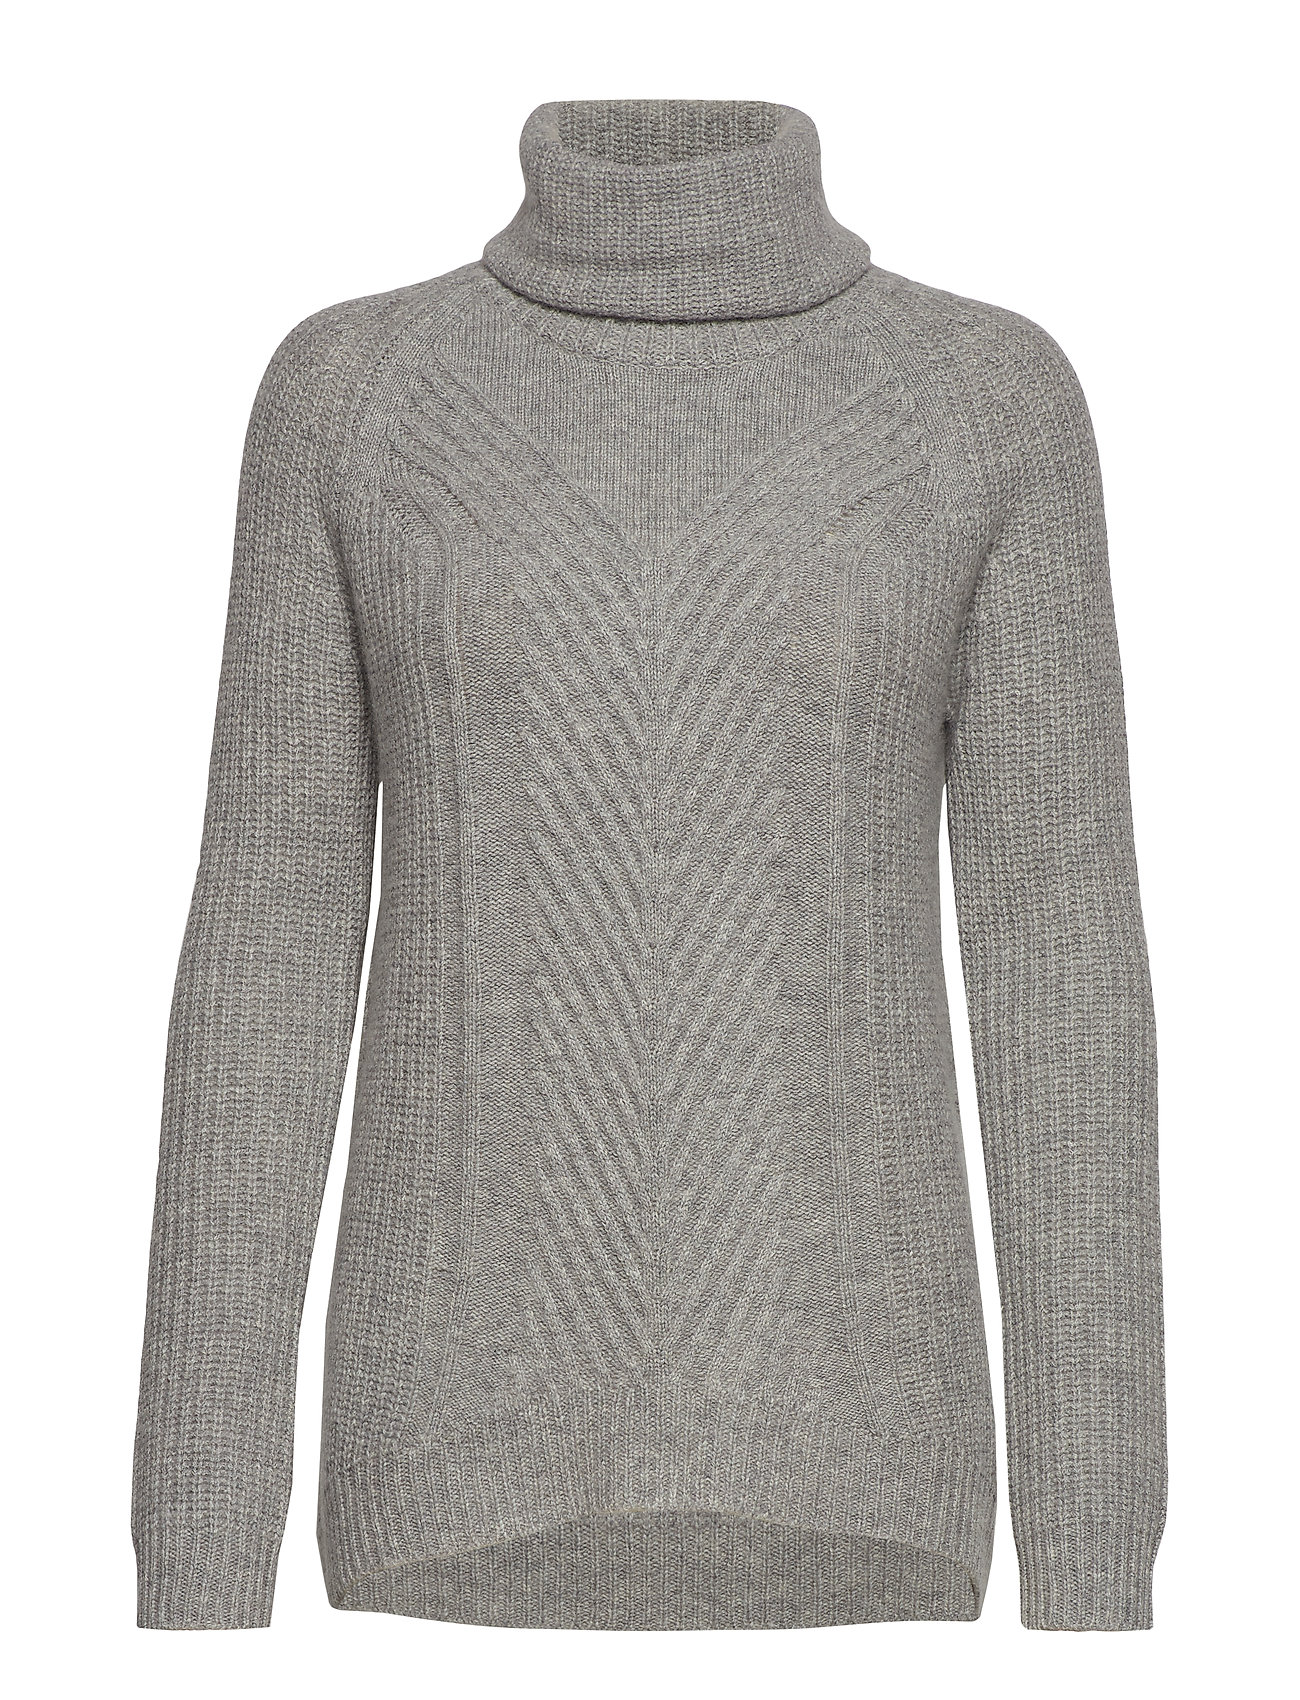 Andiata HOLLIE HIGH NECK CHUNKY KNIT - LIGHT GREY